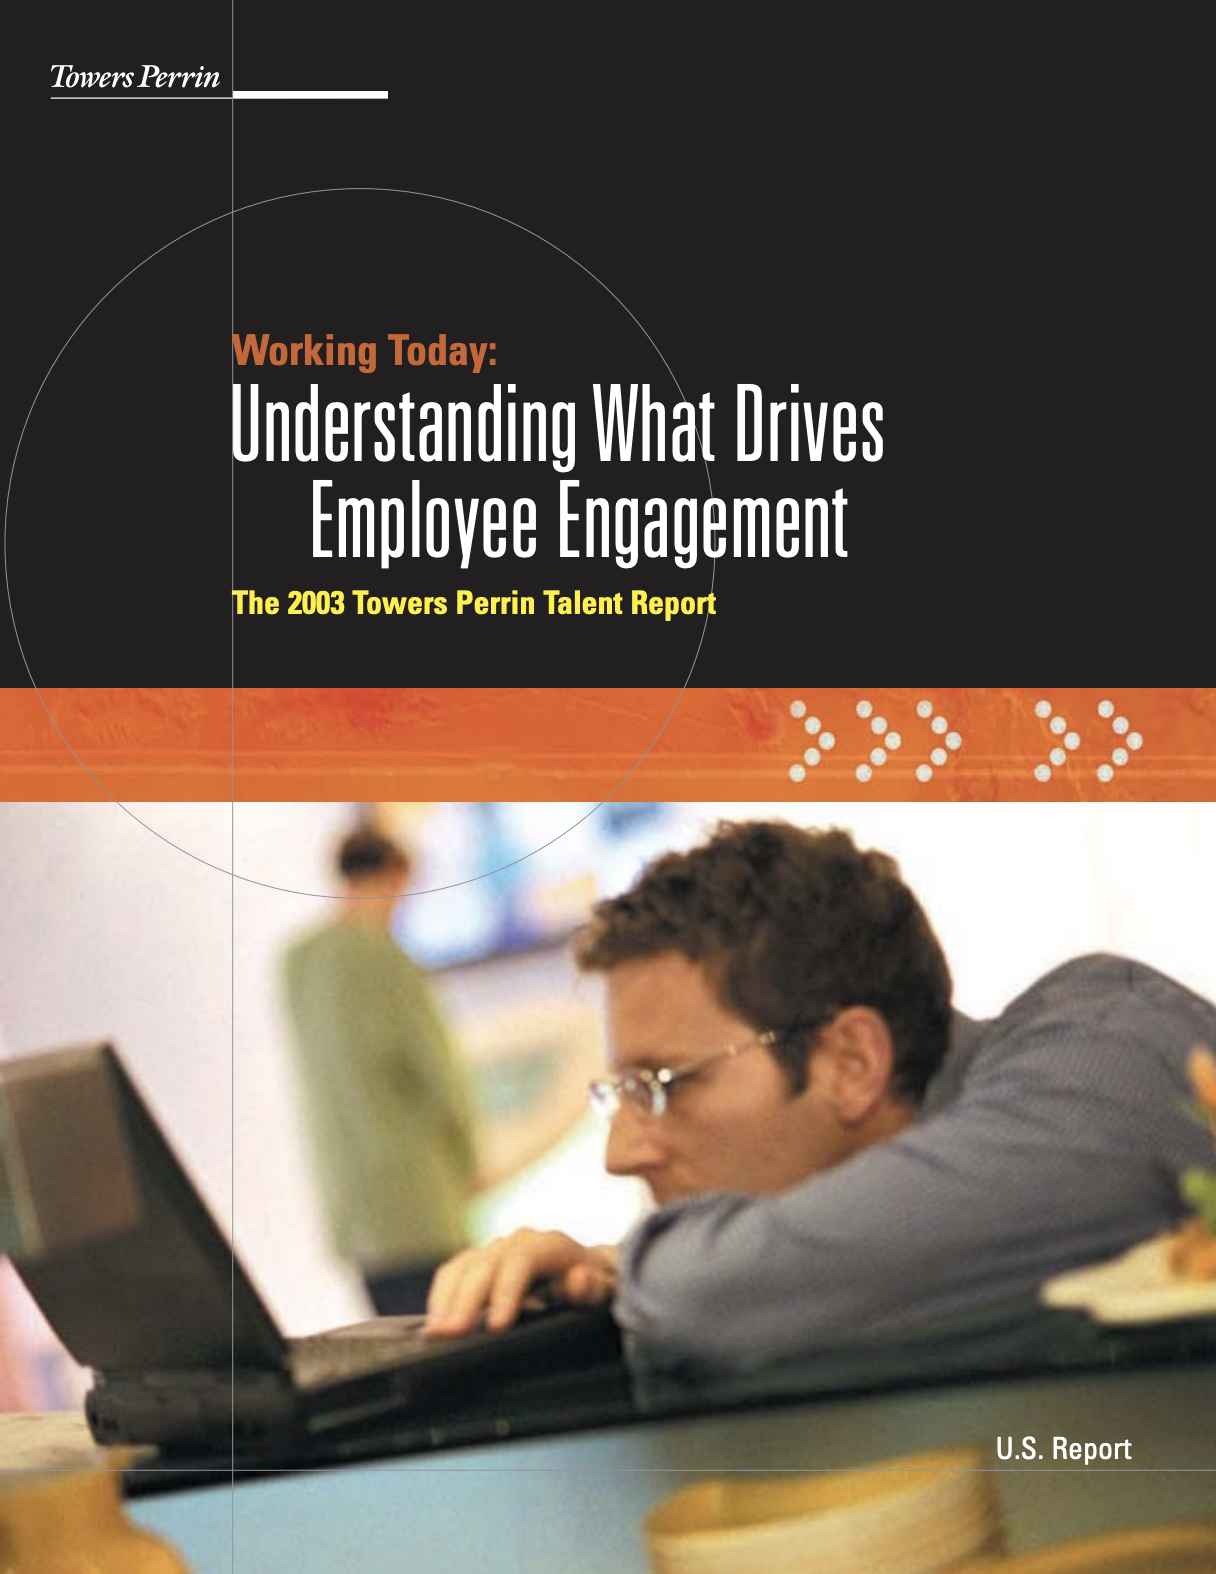 Understanding What Drives Employee Engagement